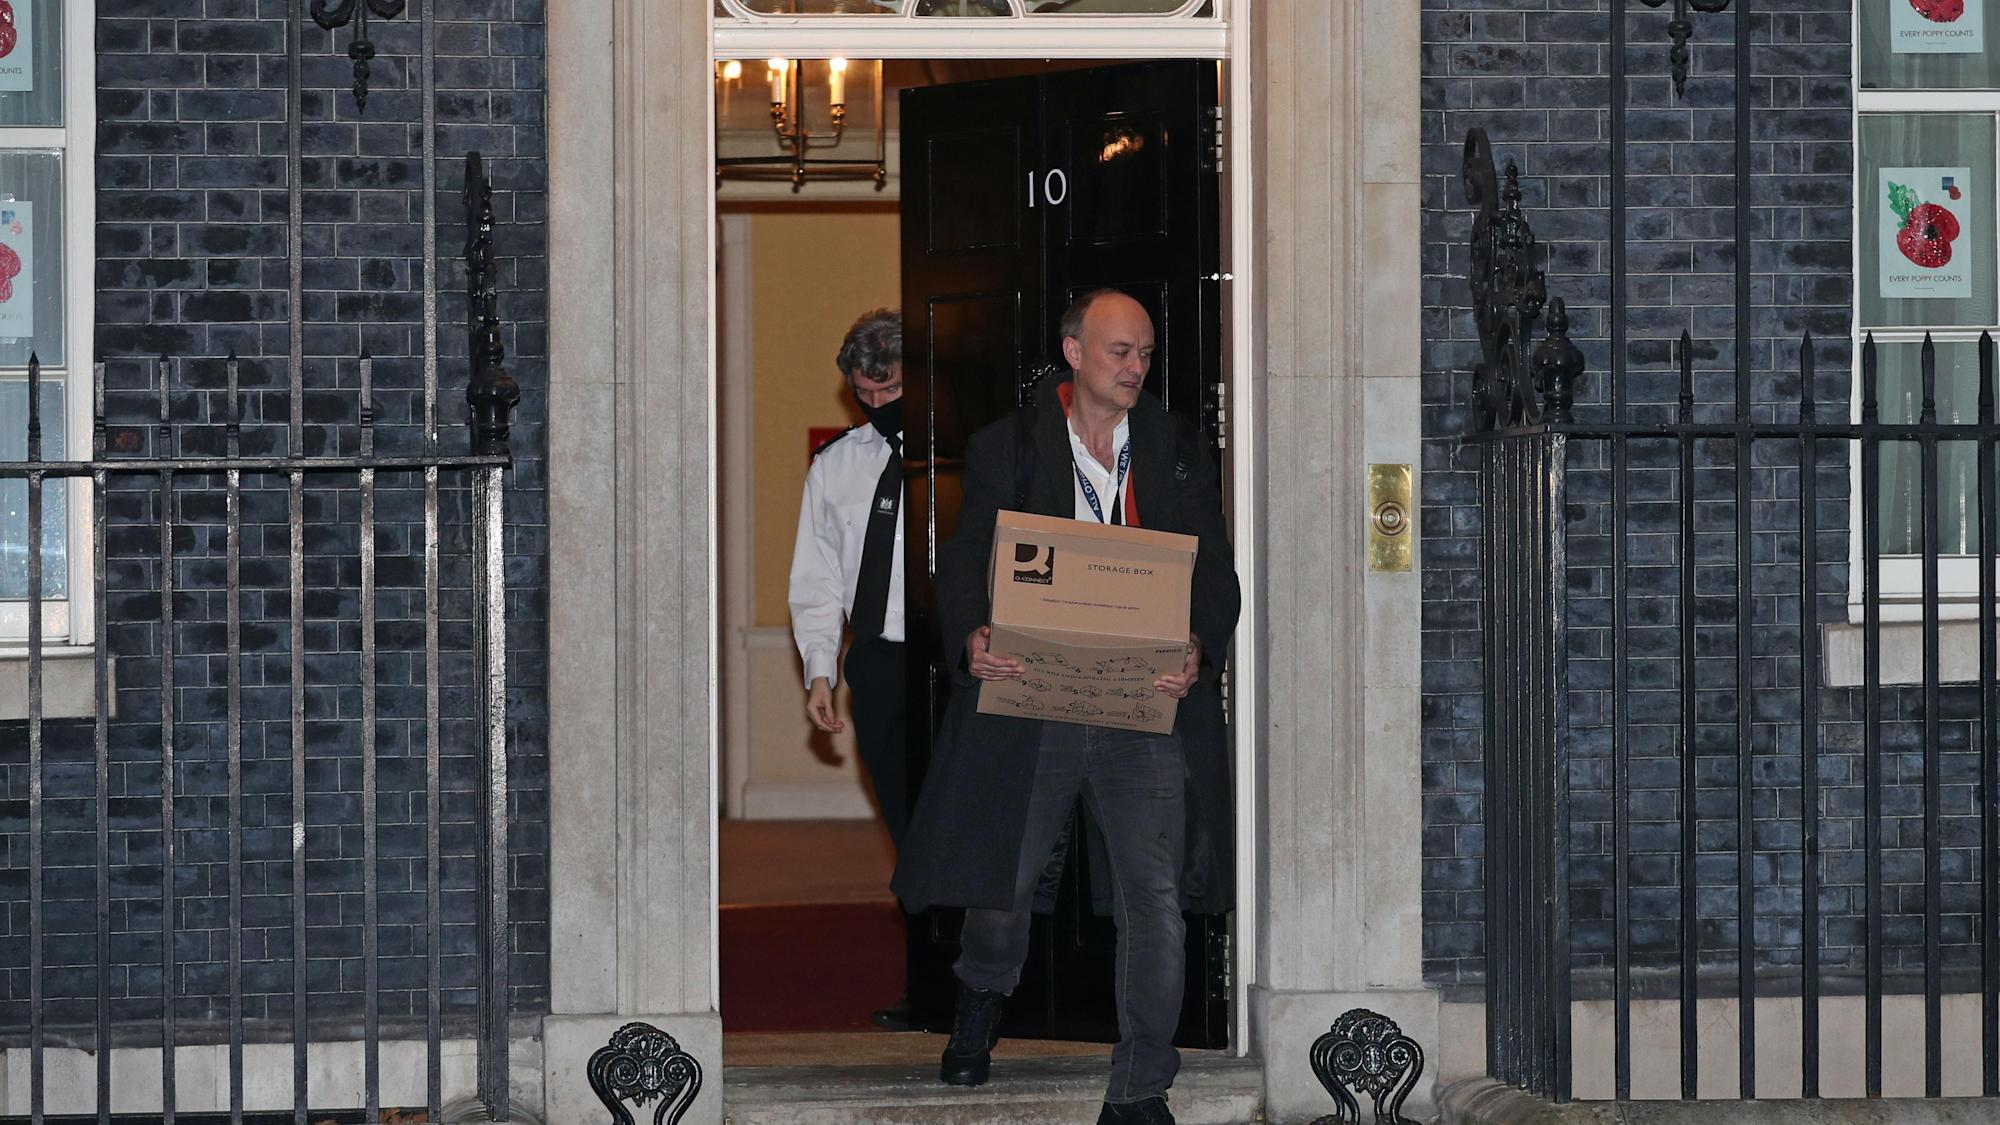 Dominic Cummings' Downing Street exit part of an 'episode', says minister